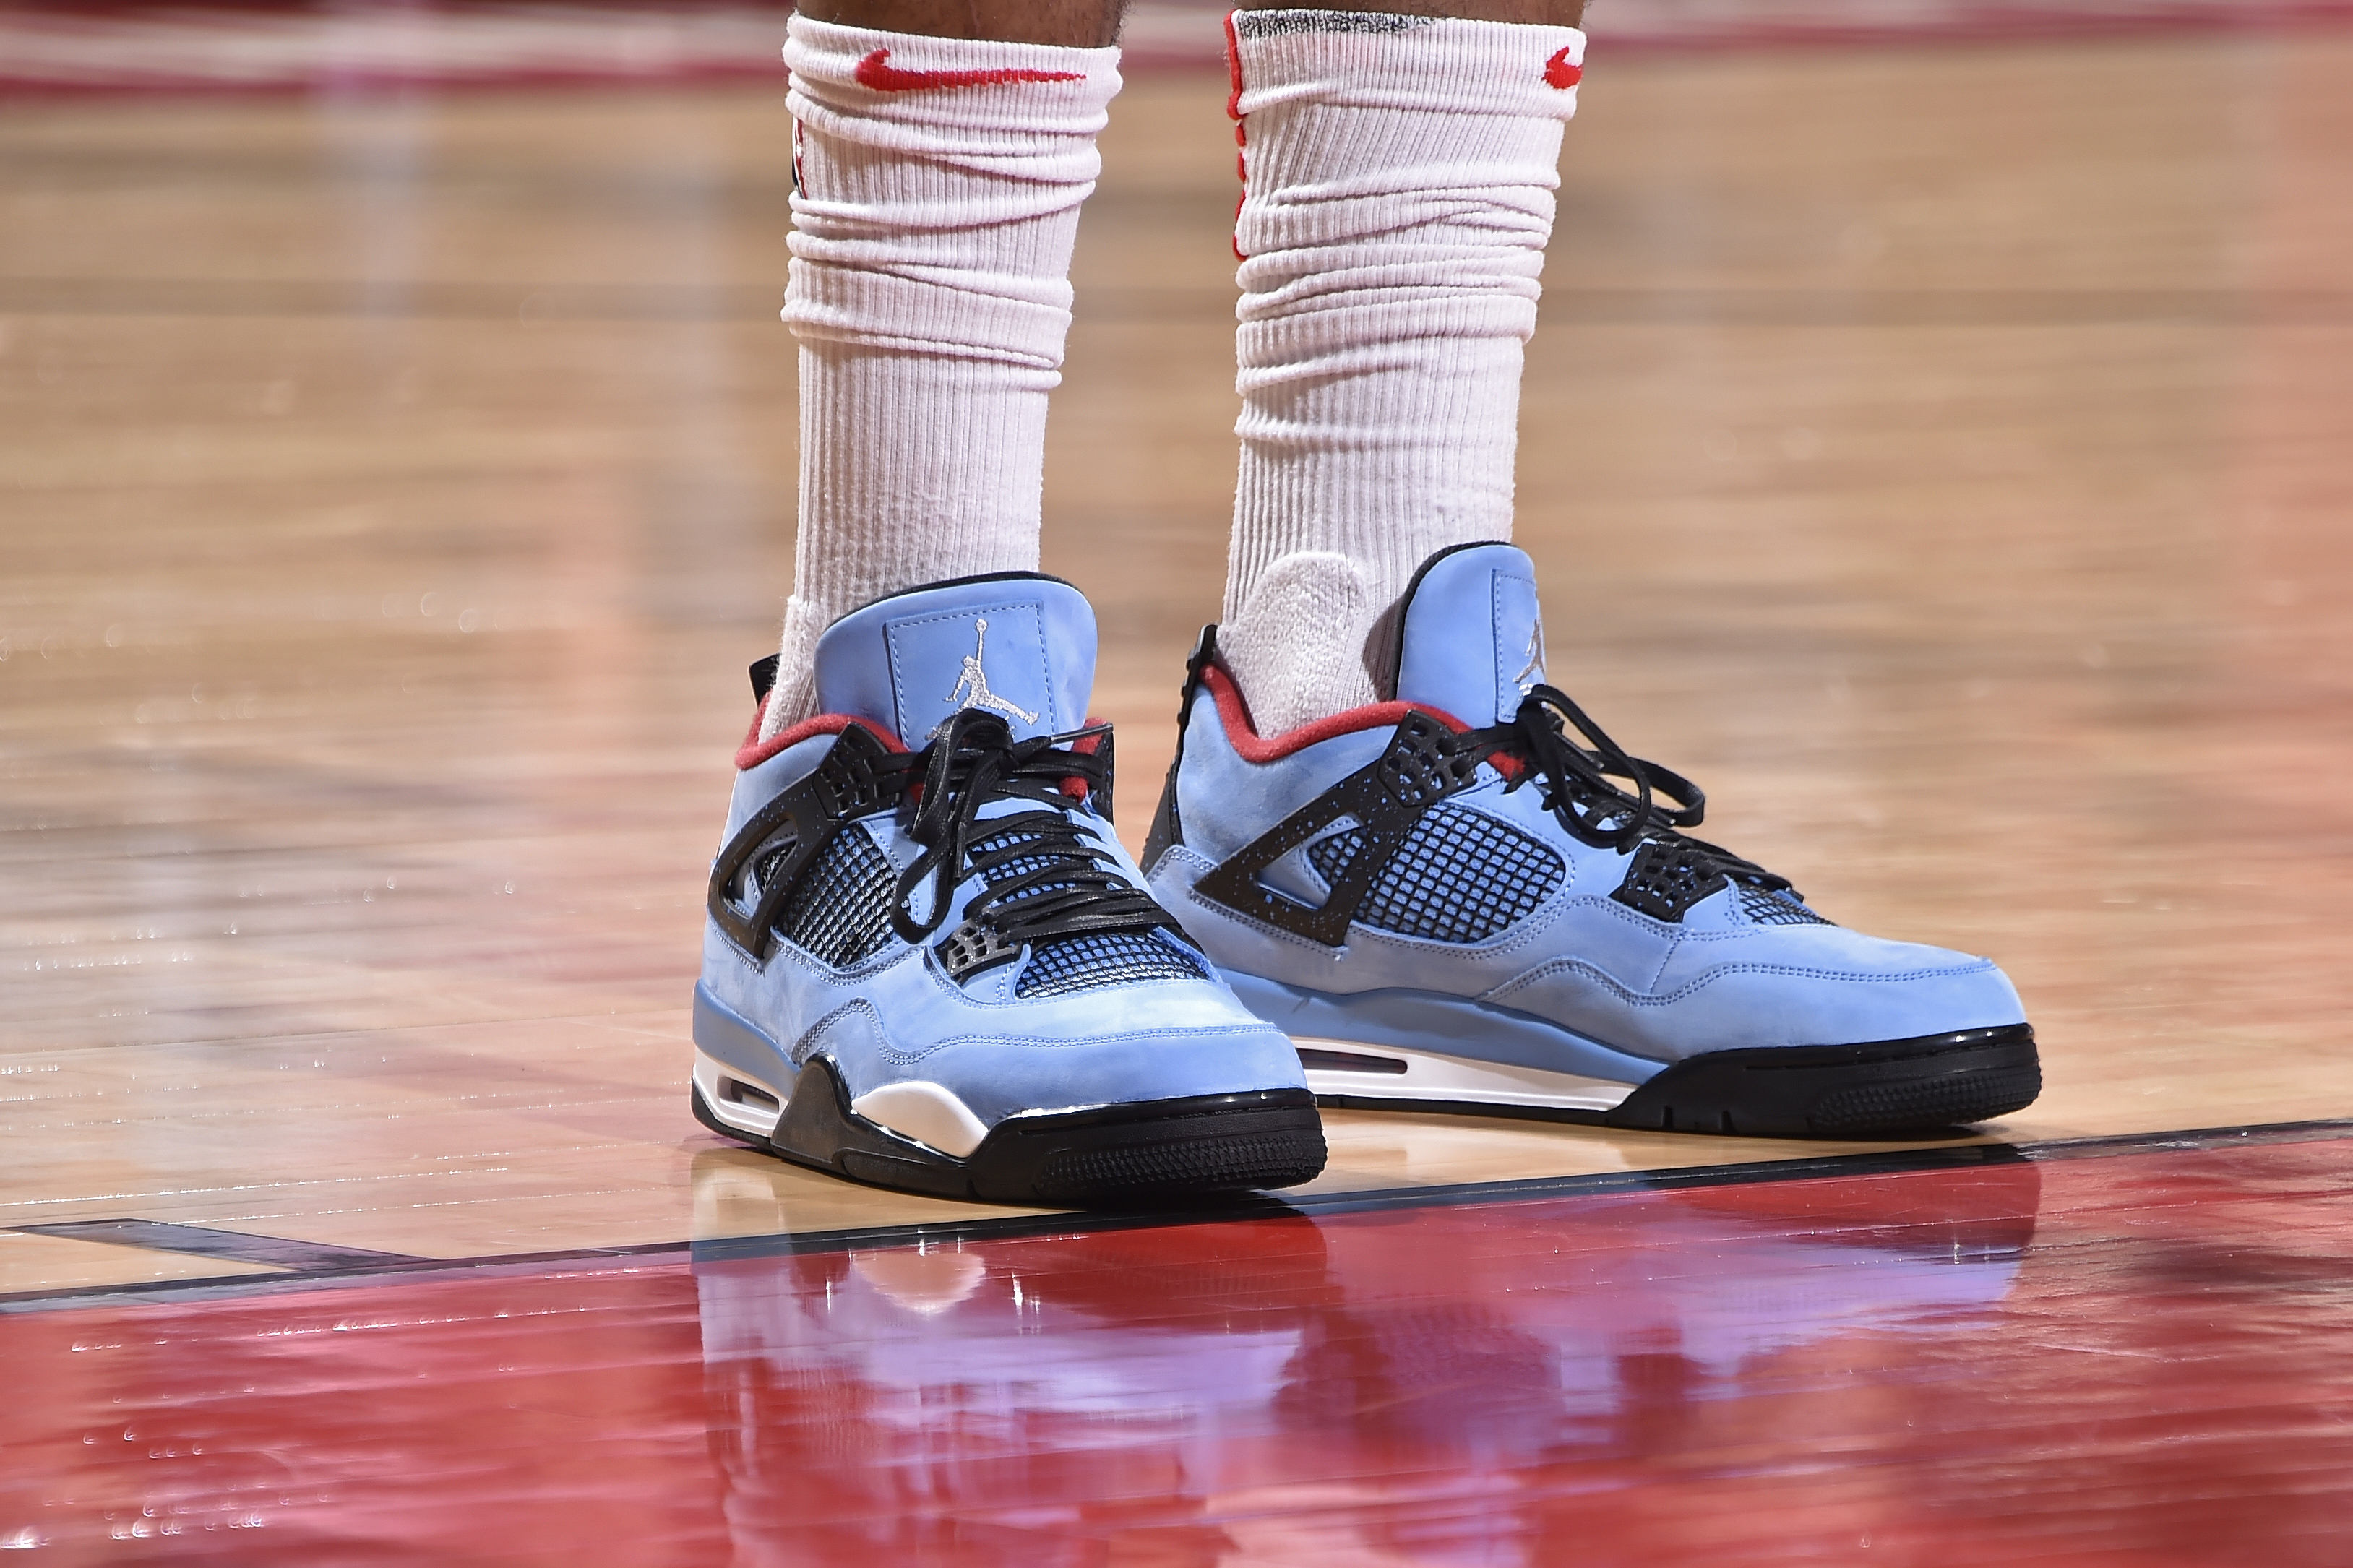 691ccab08ea6 The sneakers of P.J. Tucker of the Houston Rockets during the first half of  Game 2 against the Minnesota Timberwolves in the first round of the 2018  NBA ...